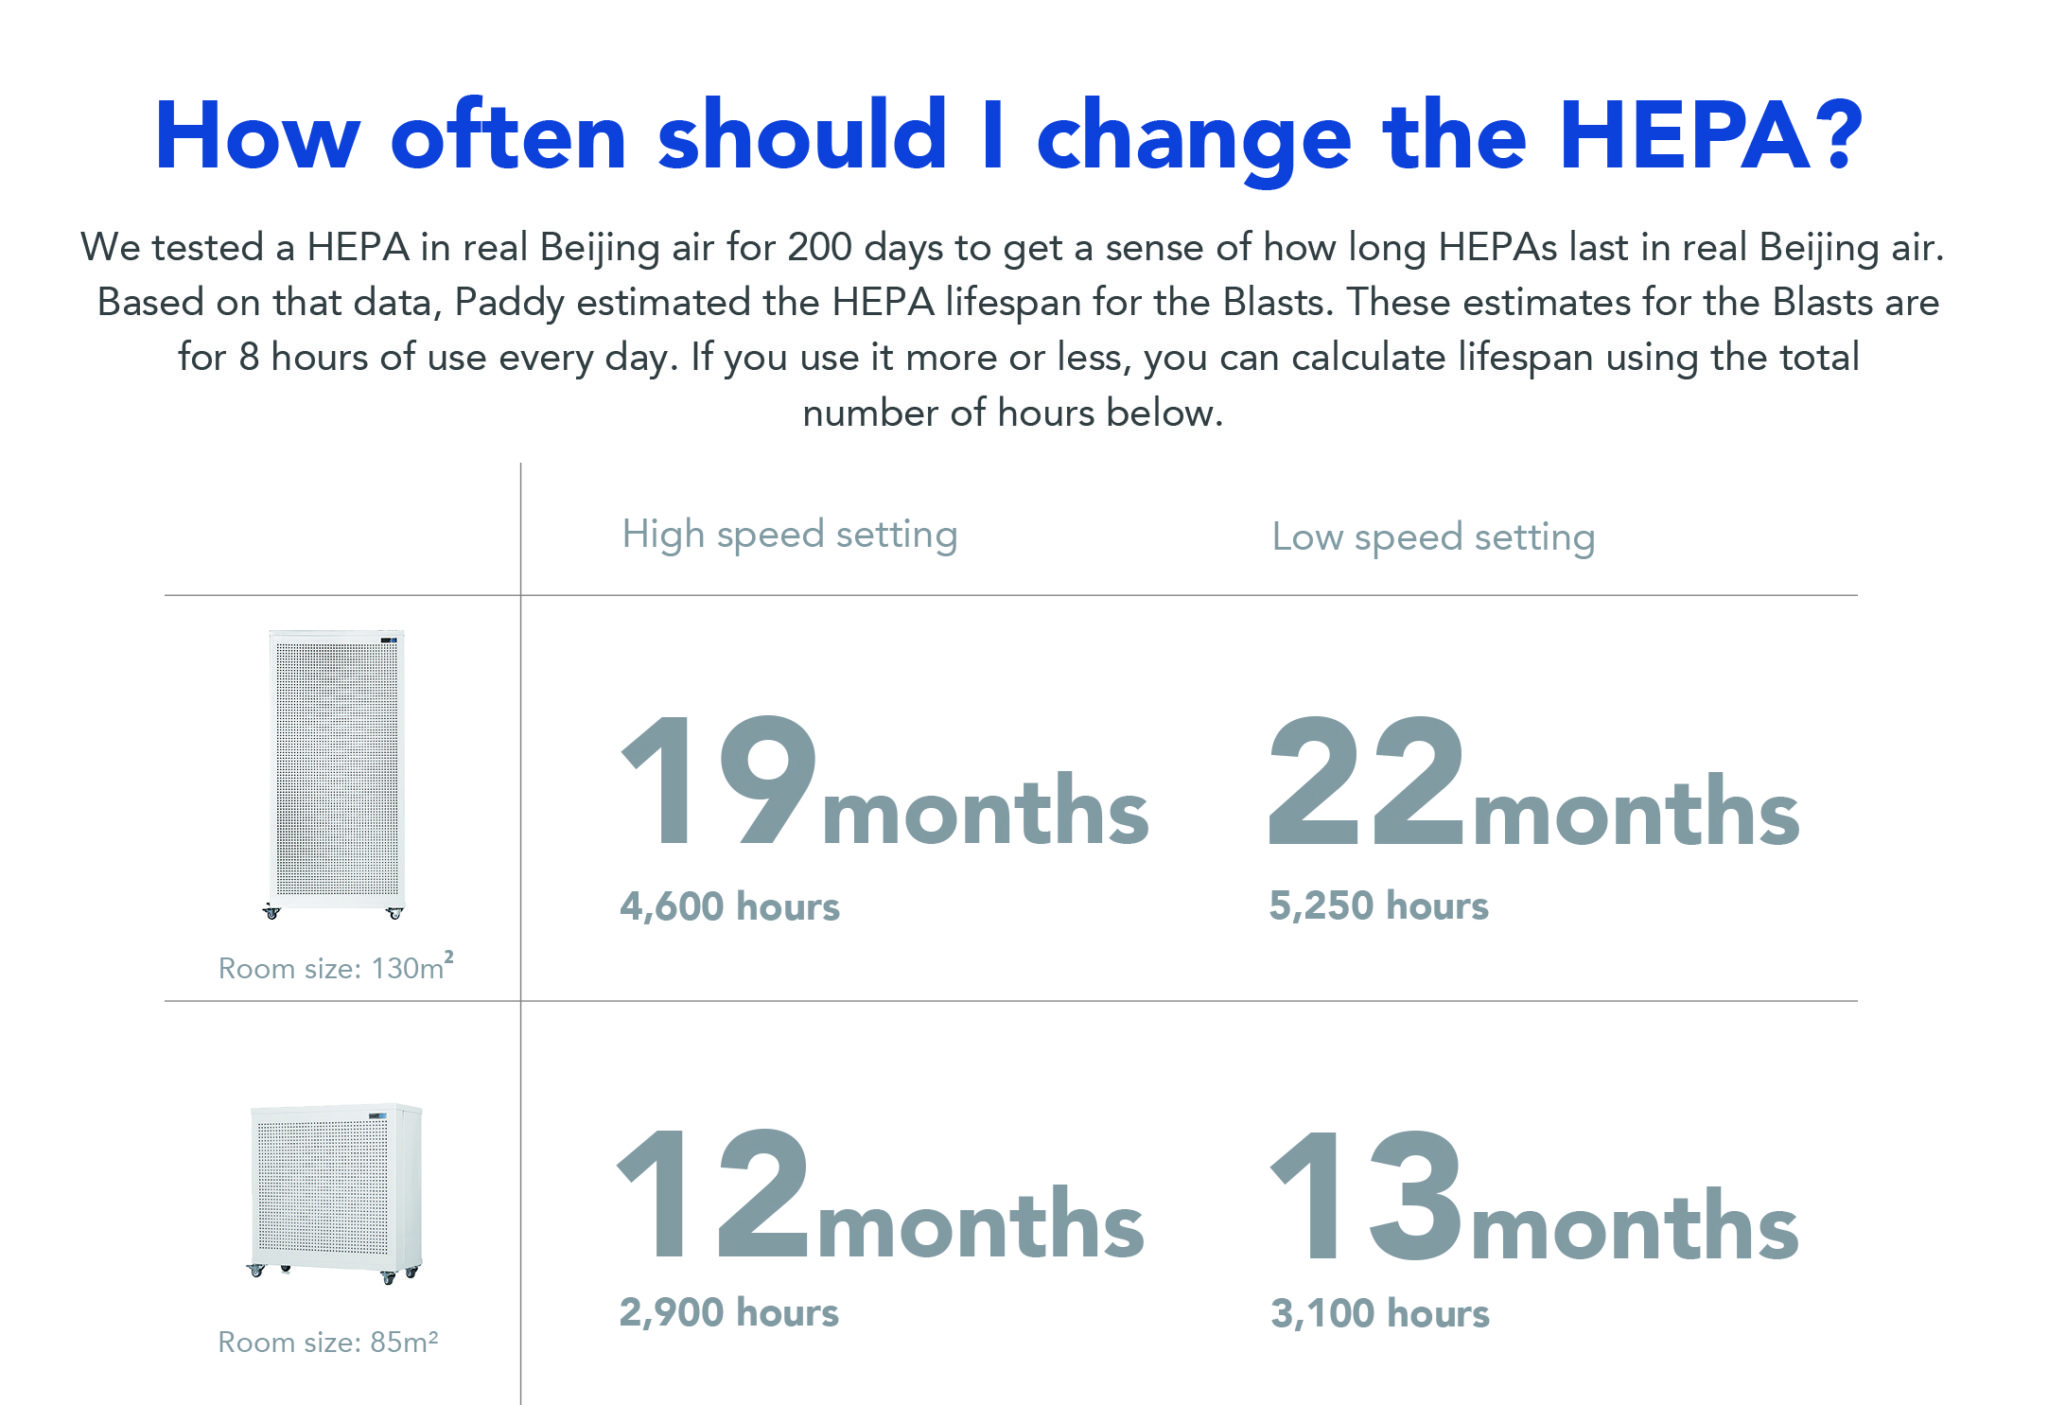 HEPA Filter change frequency